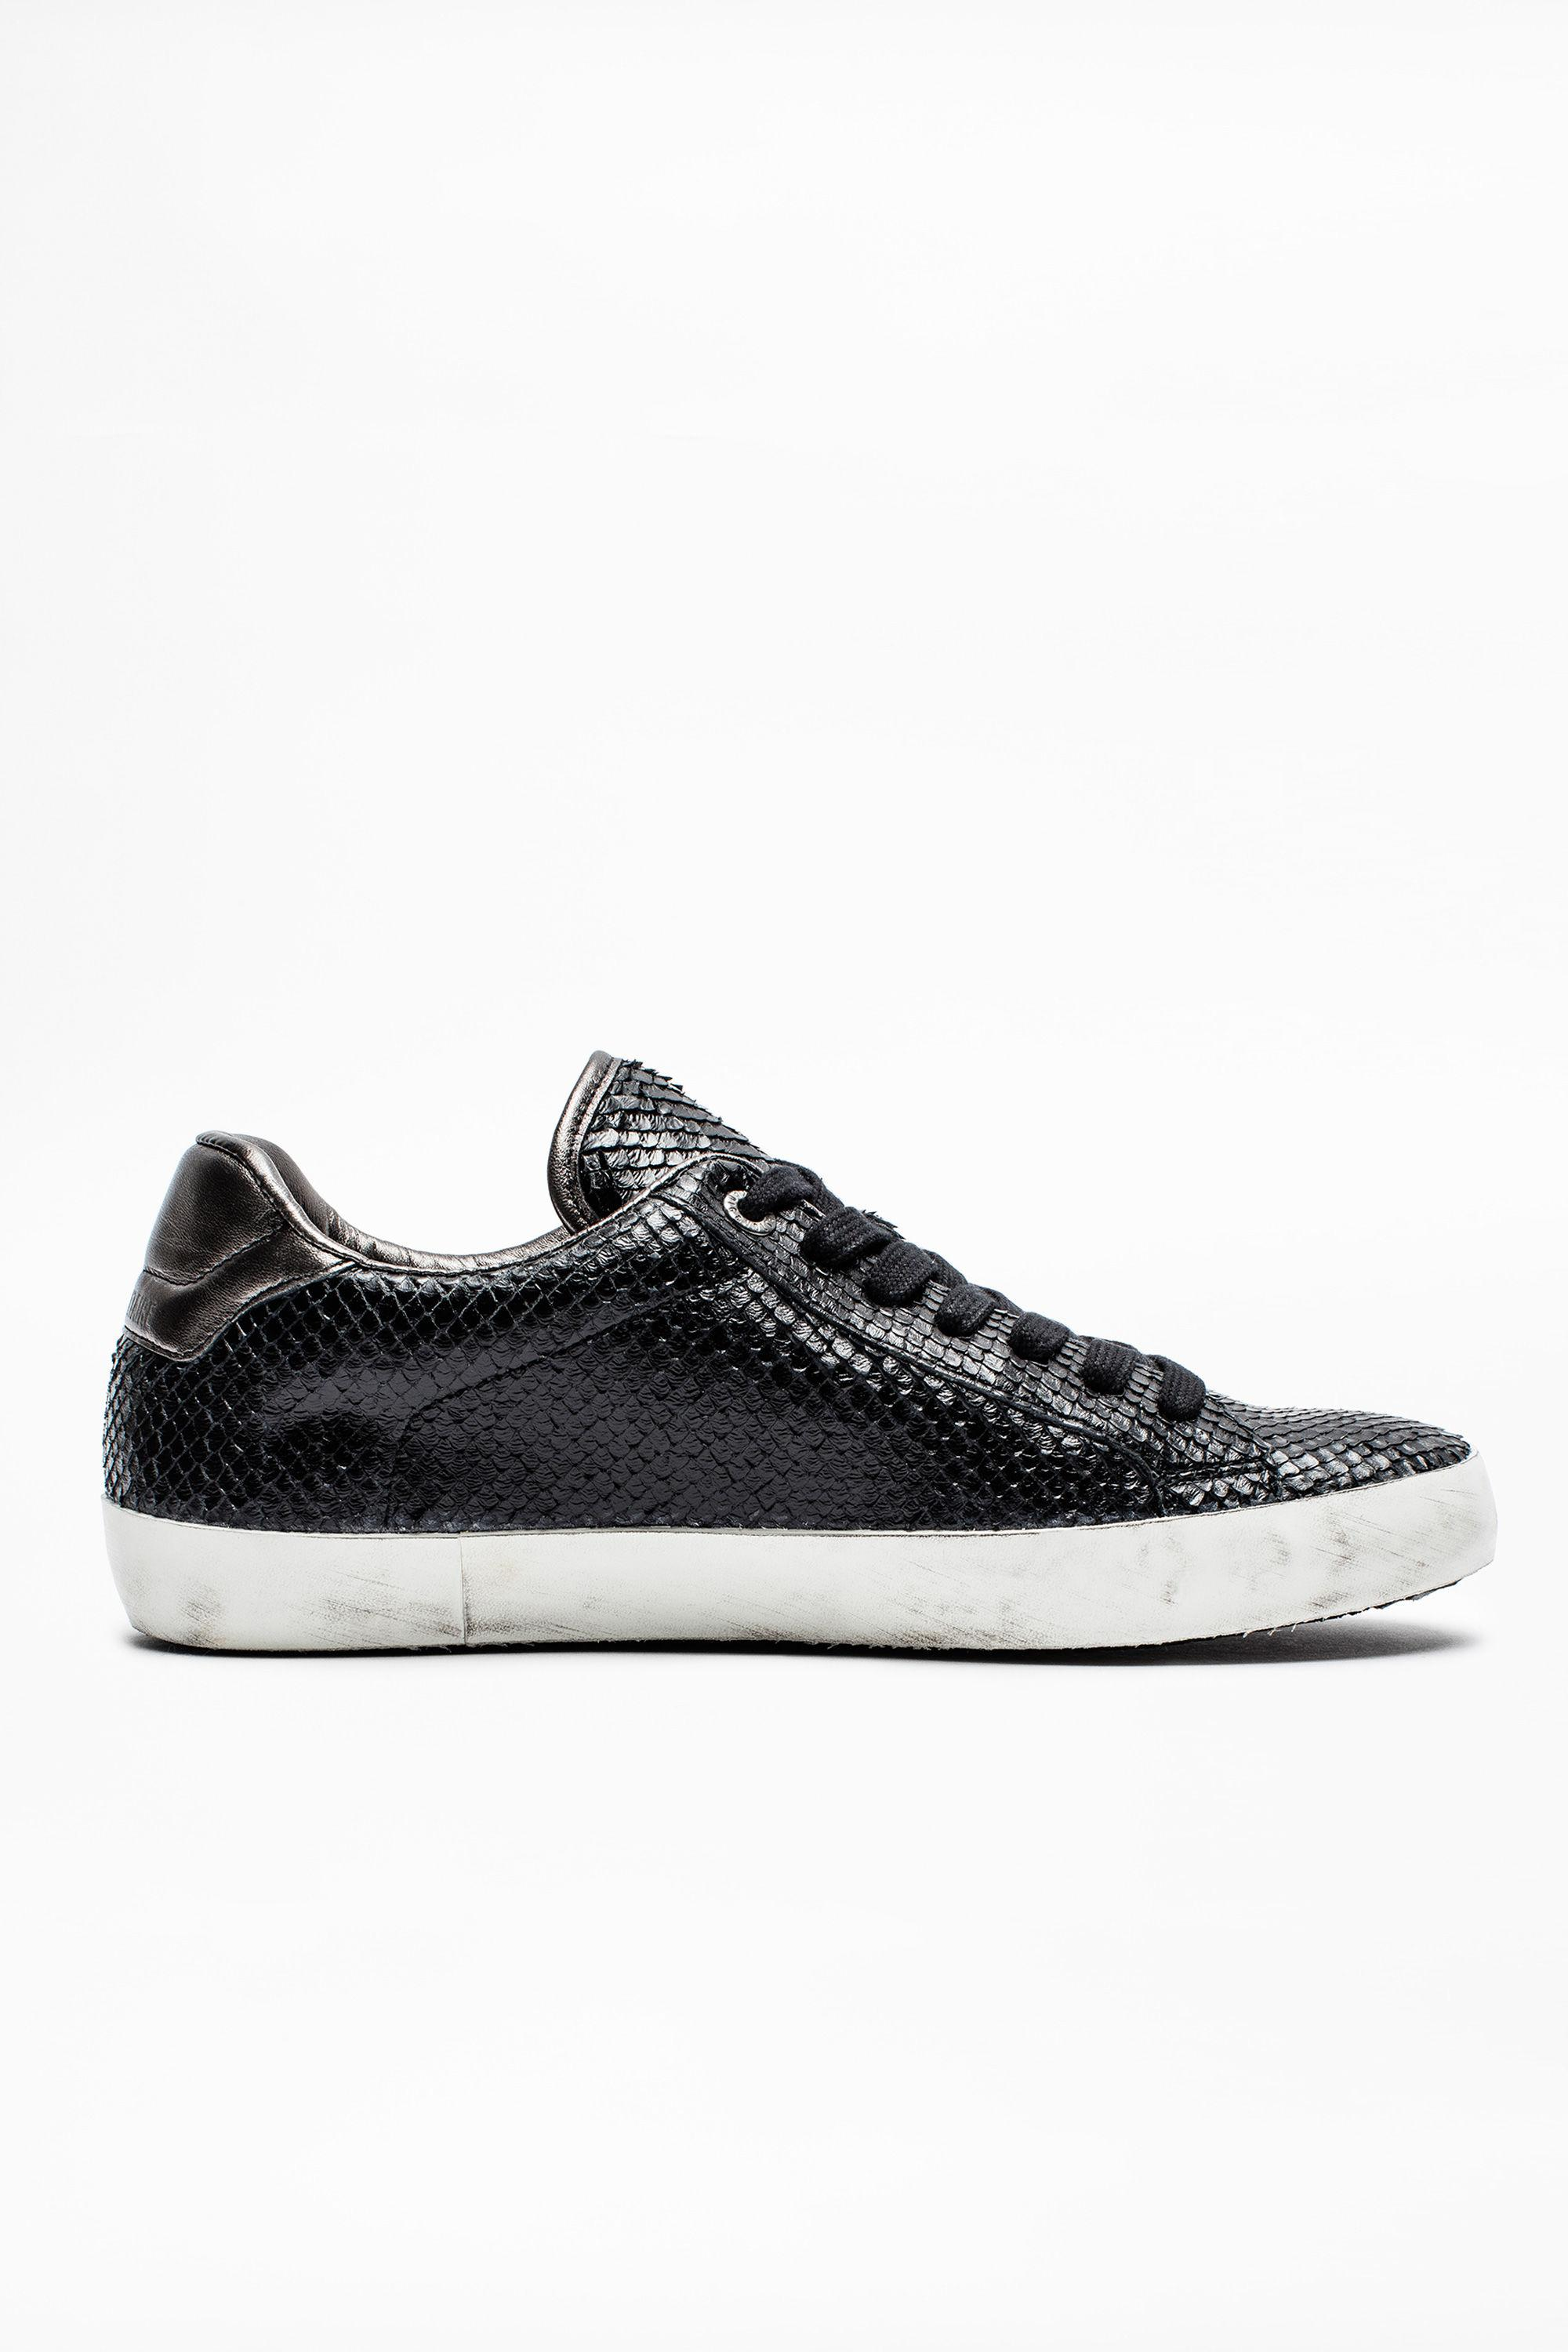 check out 8365a 4c6a4 zadig-and-voltaire-BLACK-Zadig-Neo-Keith-Men-Sneakers.jpeg